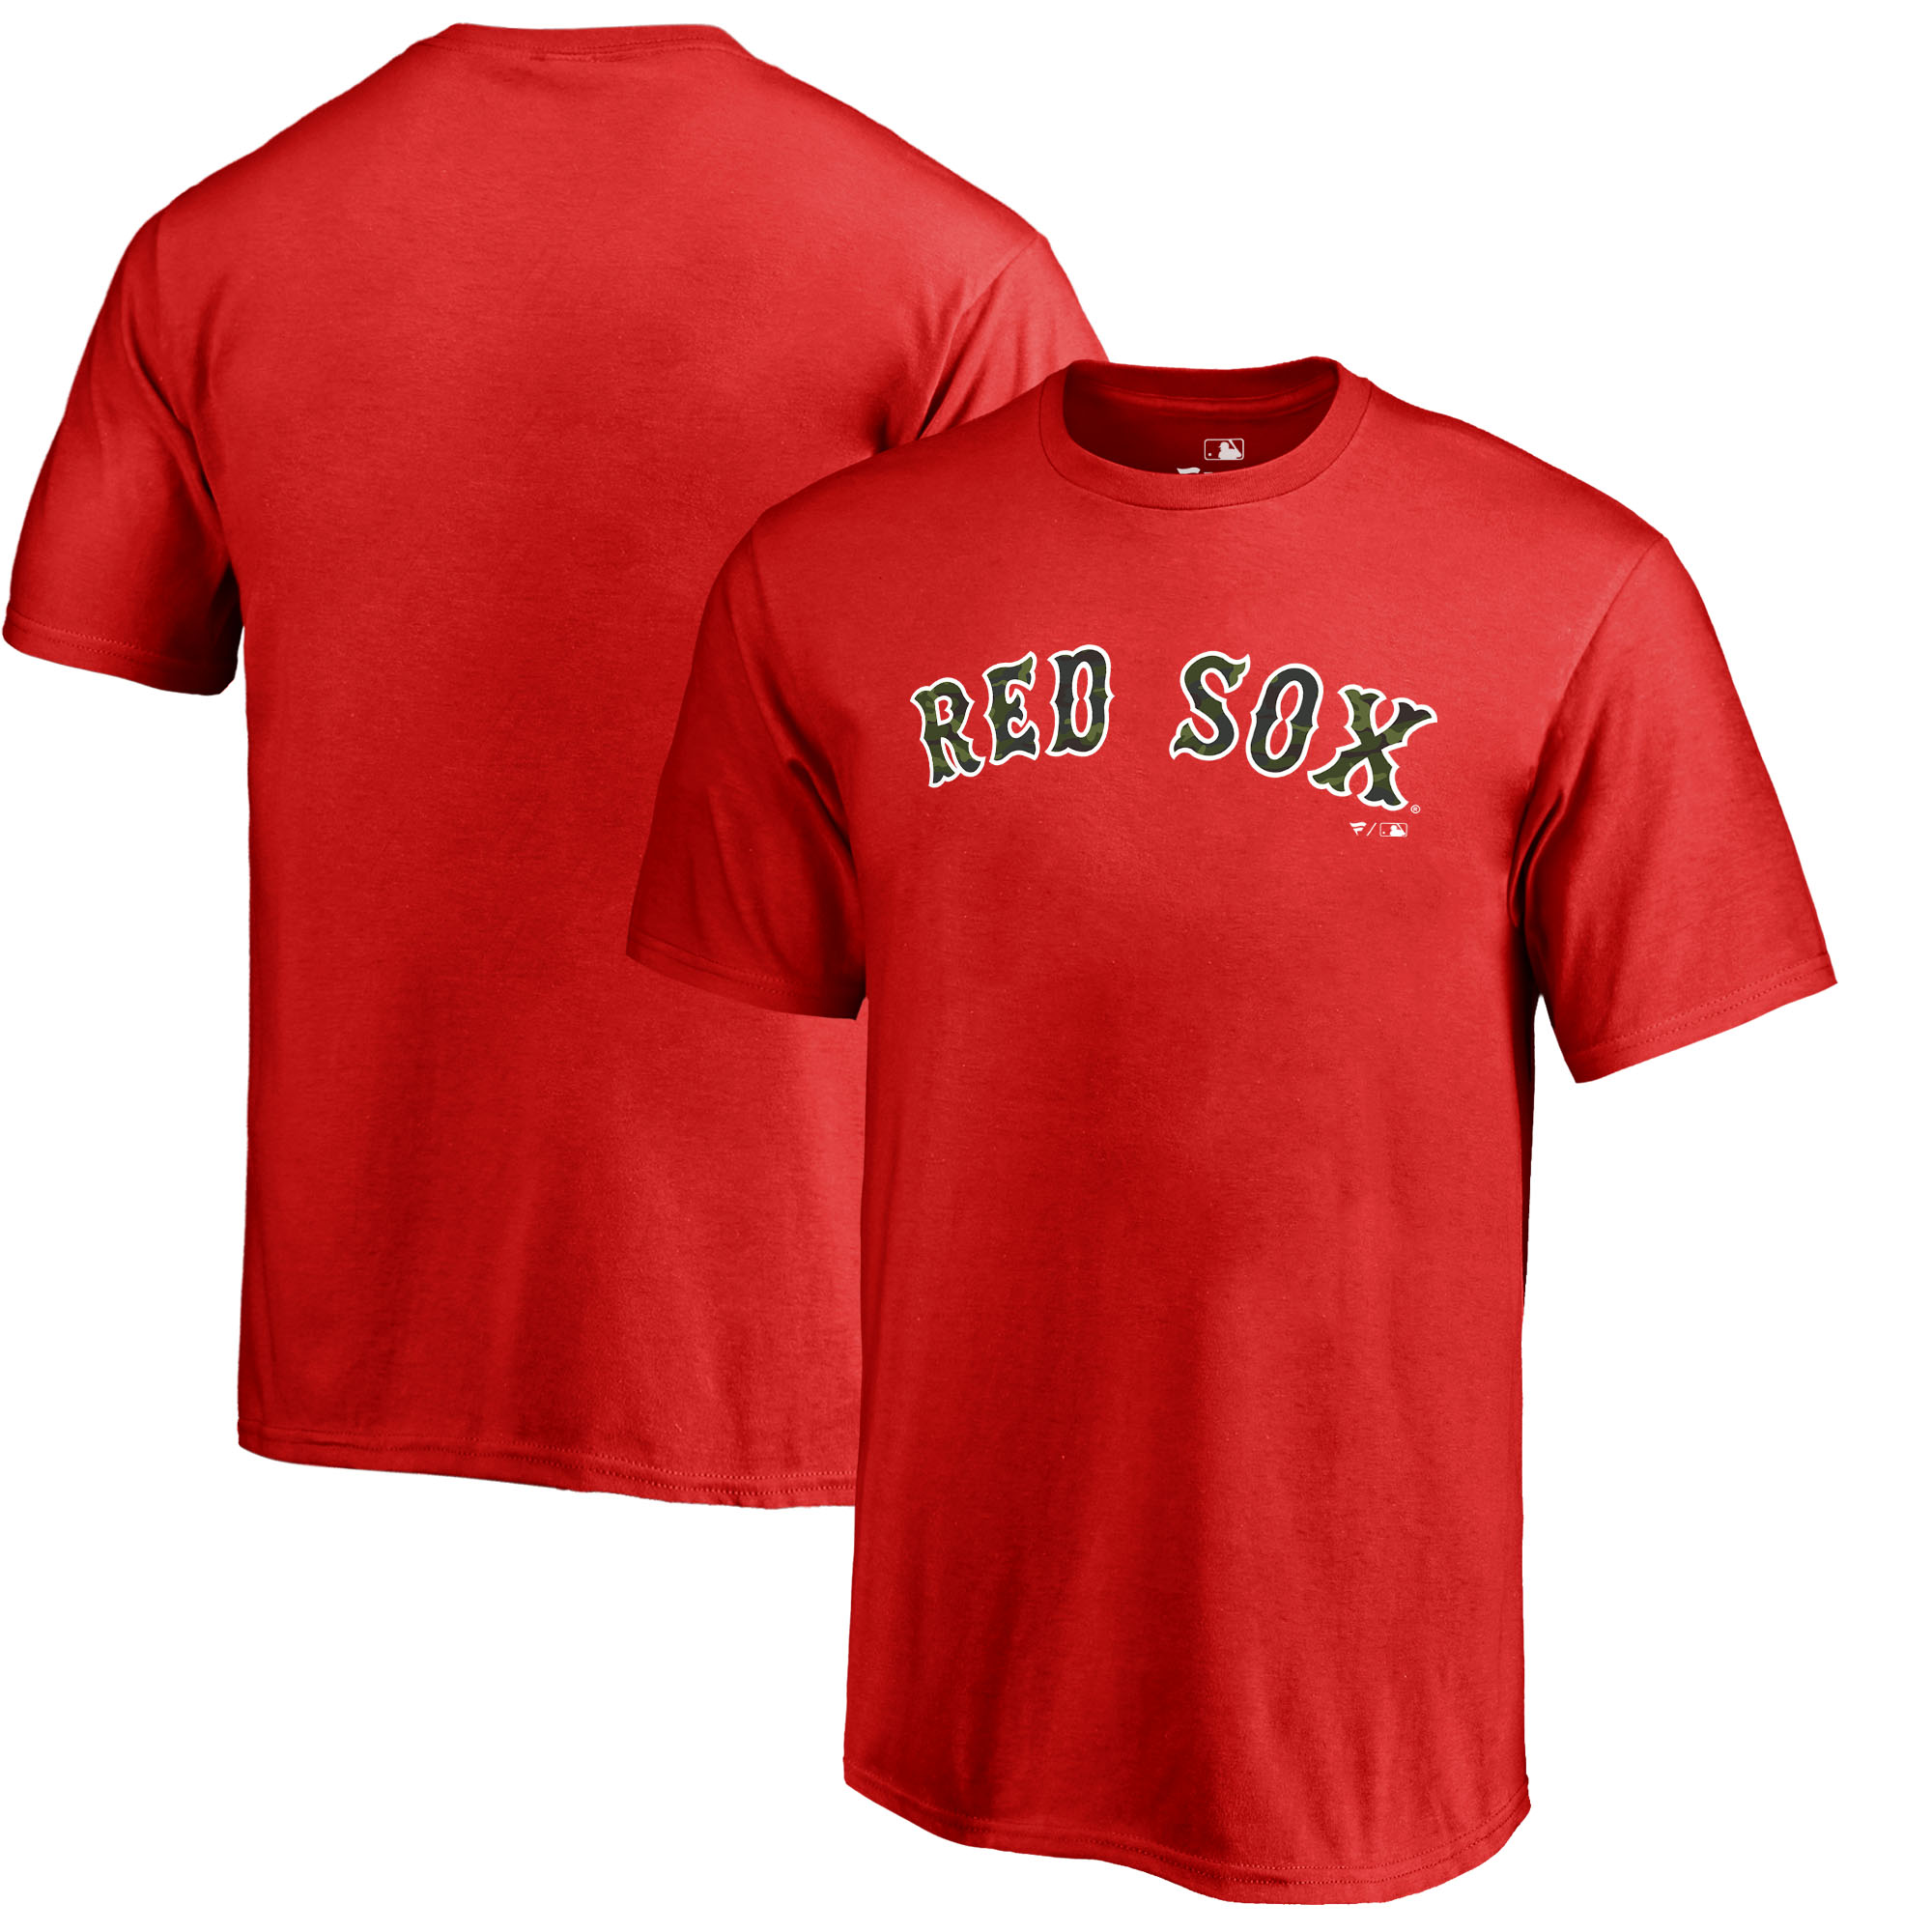 Boston Red Sox Fanatics Branded Youth Memorial Wordmark T-Shirt - Red